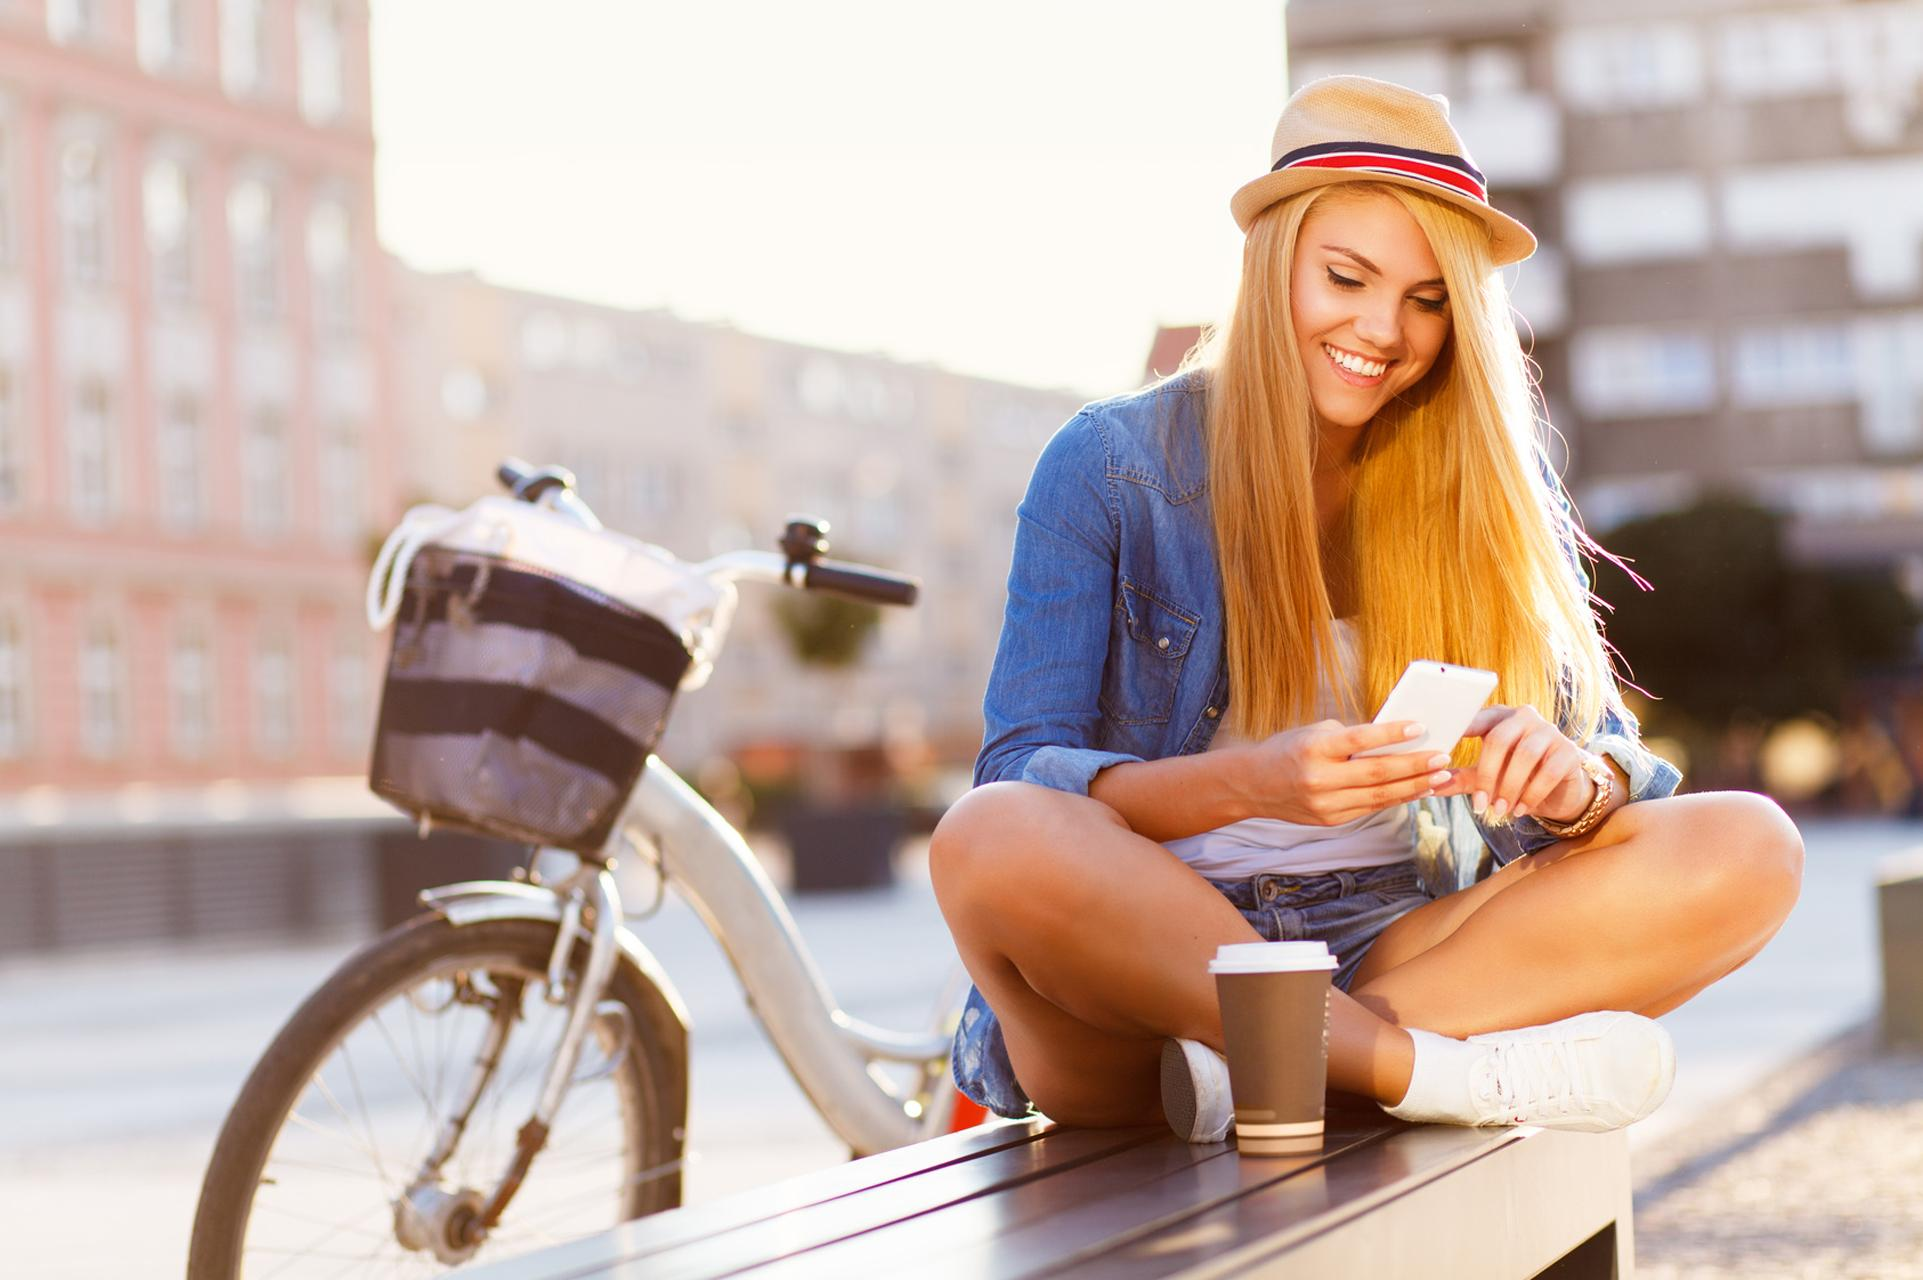 woman_iphone_bycicle